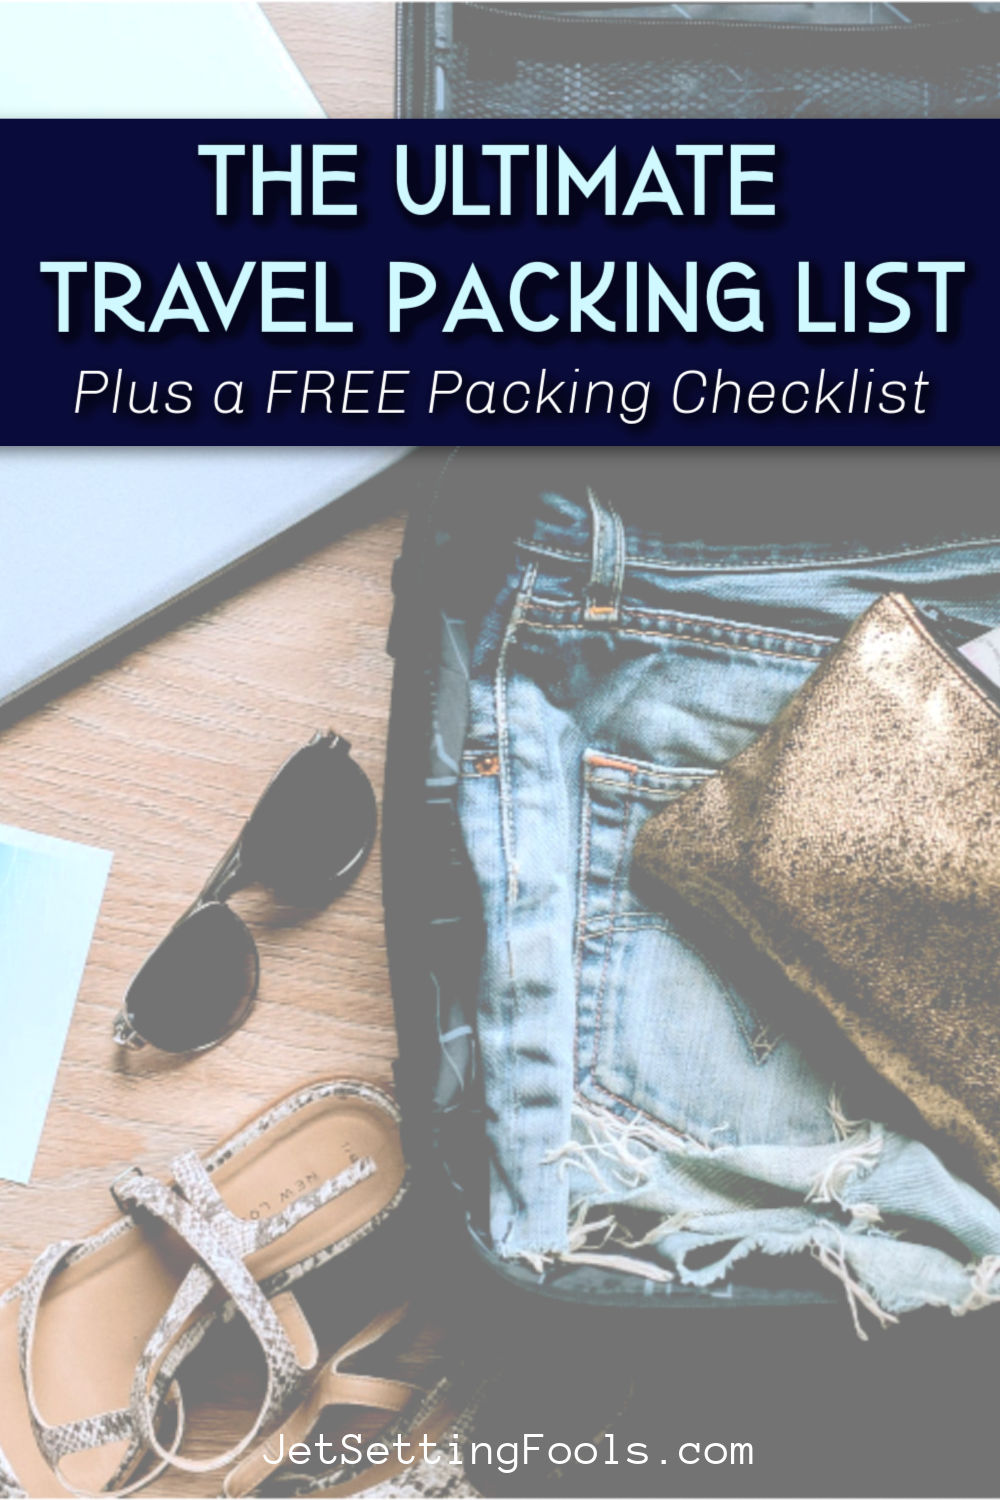 The Ultimate Travel Packing List Plus Free Packing Checklist by JetSettingFools.com